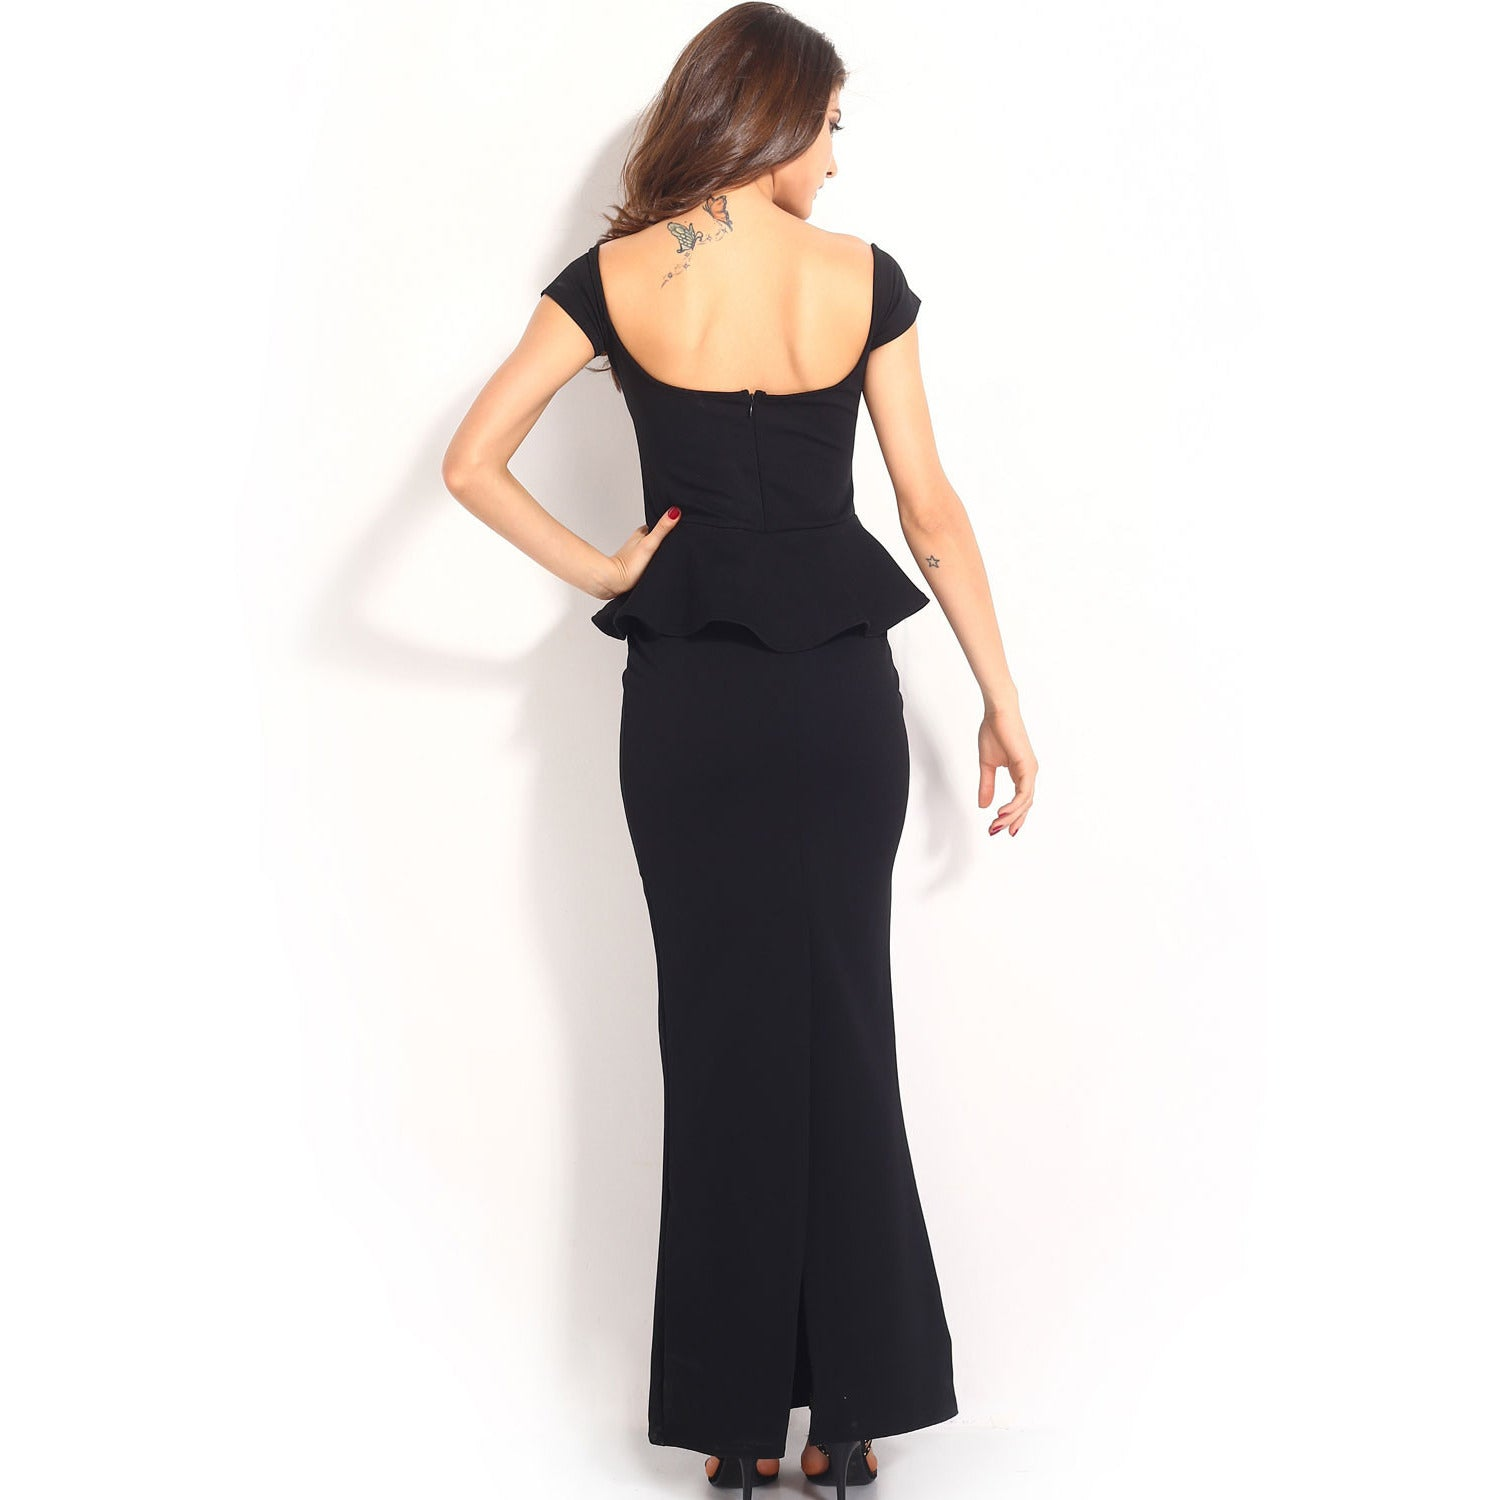 Black Peplum Maxi Dress With Drop Shoulder LAVELIQ - LAVELIQ - 7